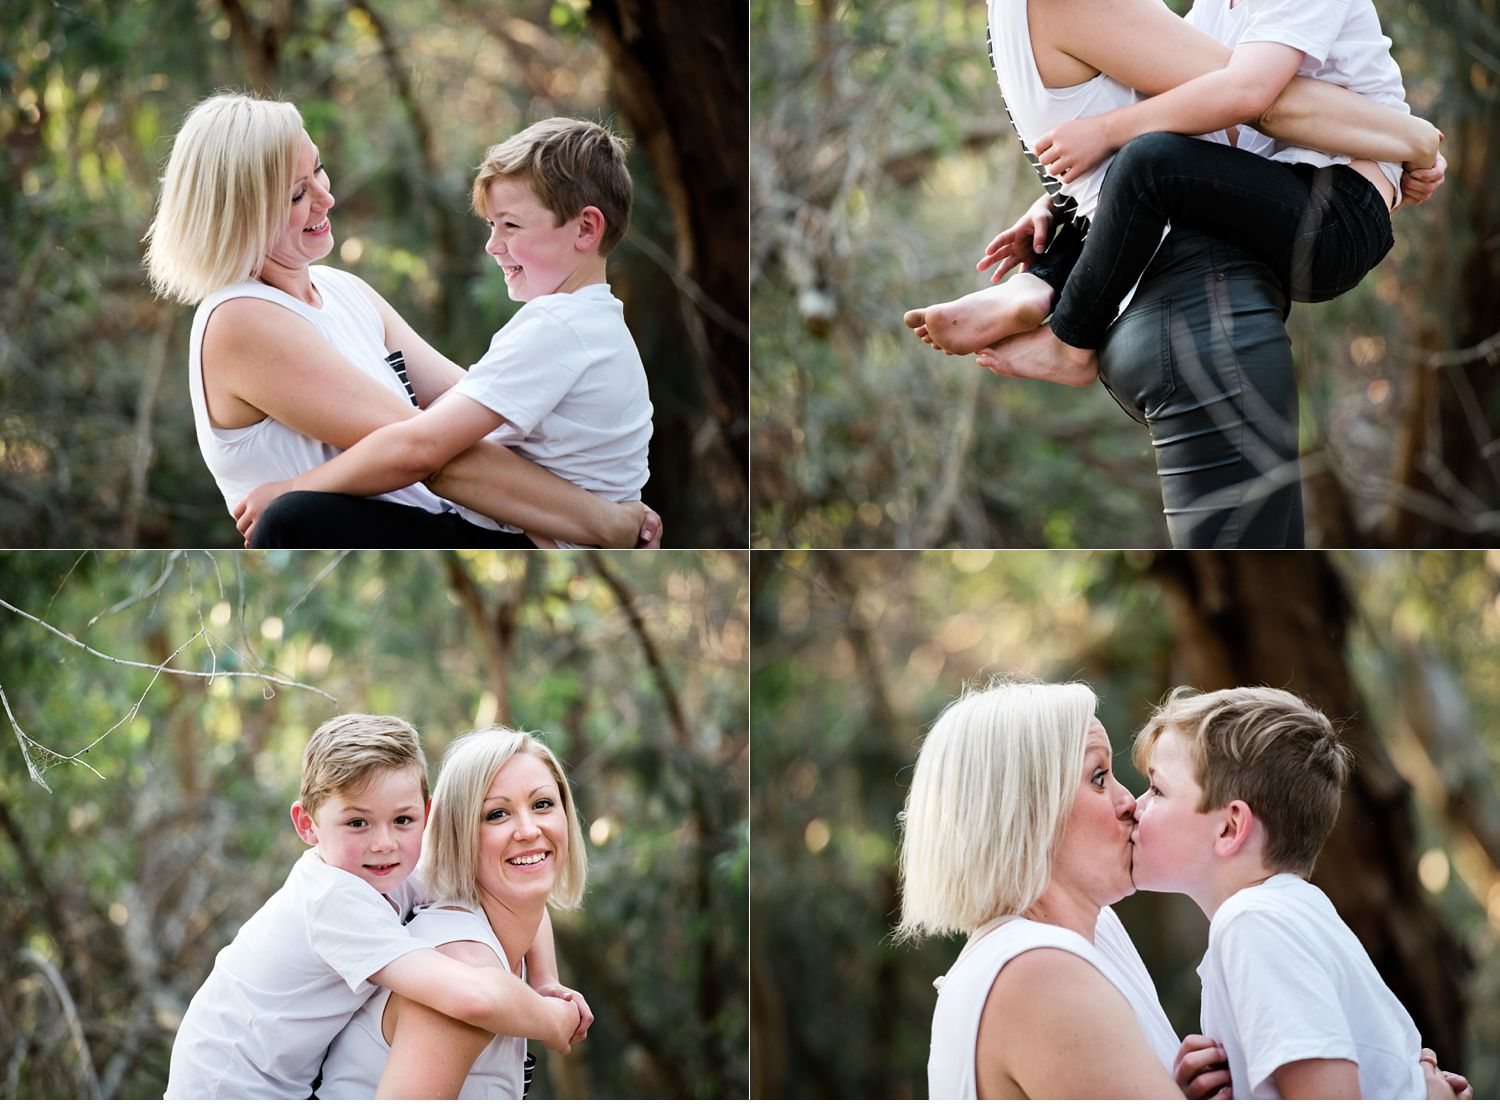 mother-son-photography-session.jpg